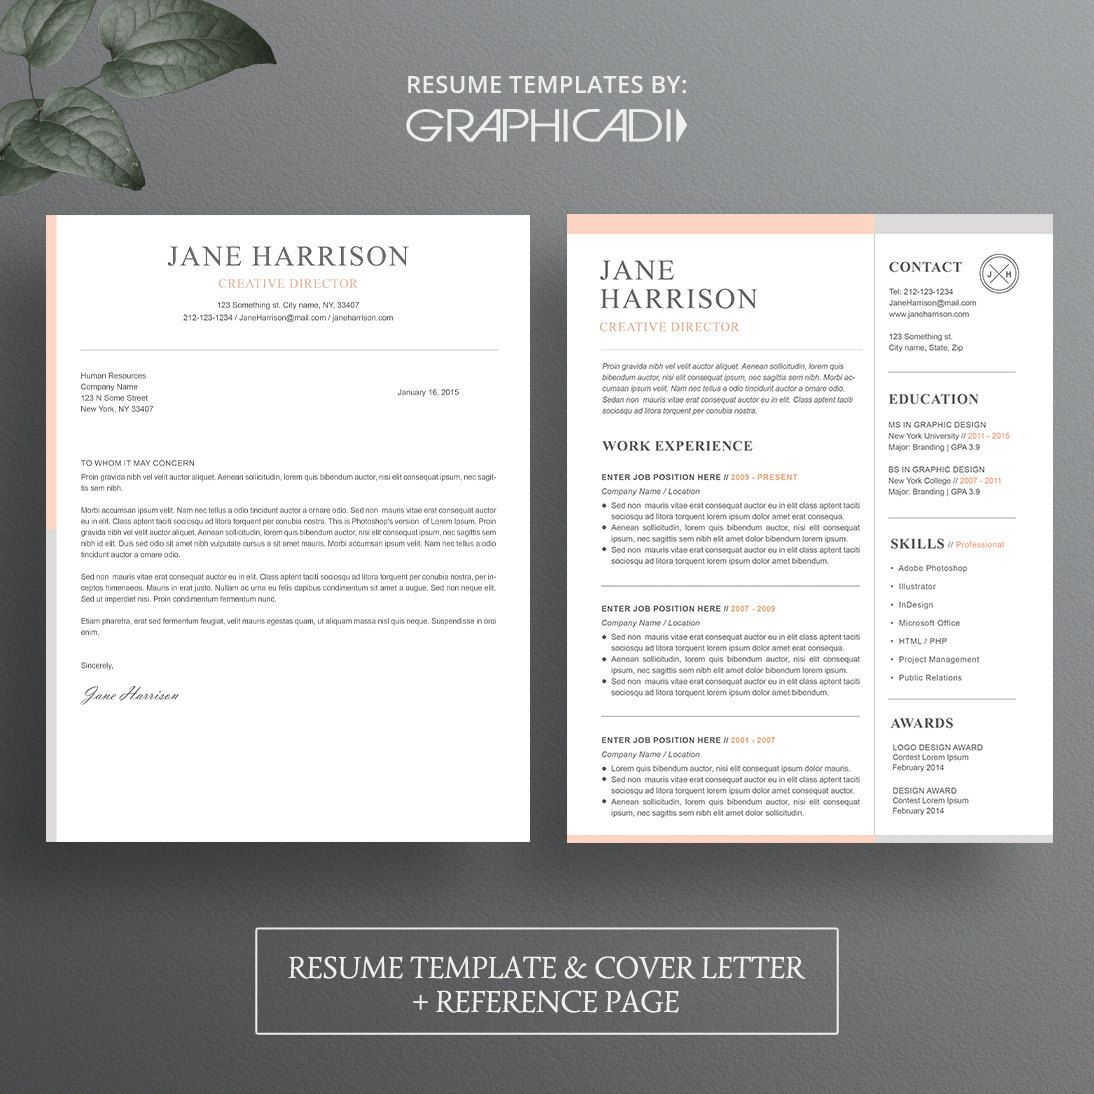 Resume Template with Cover Letter and Reference Page